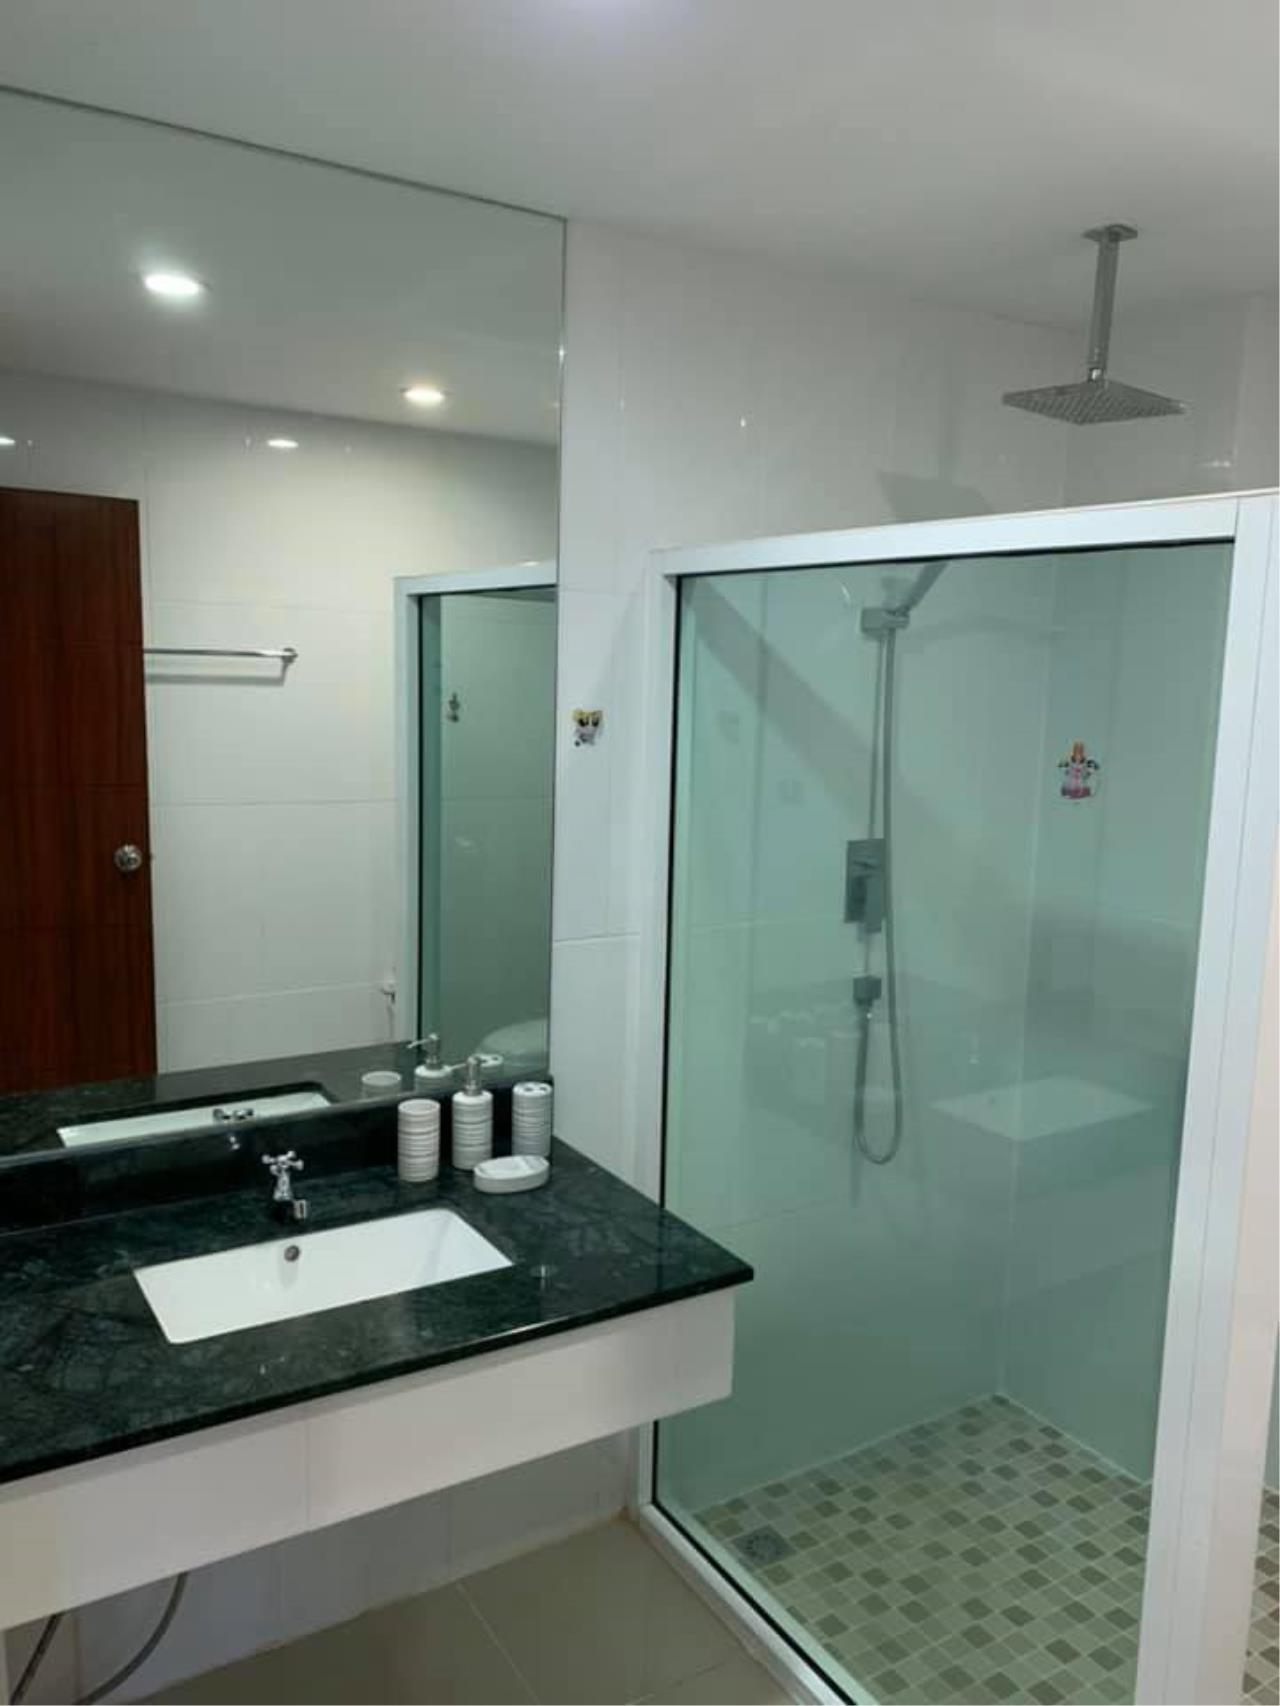 Agent Thawanrat Agency's Condo for rental TOURMALINE GOLD SATHORN – TAKSIN Near BTS.Krung Thon Buri. 1 bedroom,1 bathroom. size 40 sqm.Floor 10 th. fully furnished Ready to move in 14